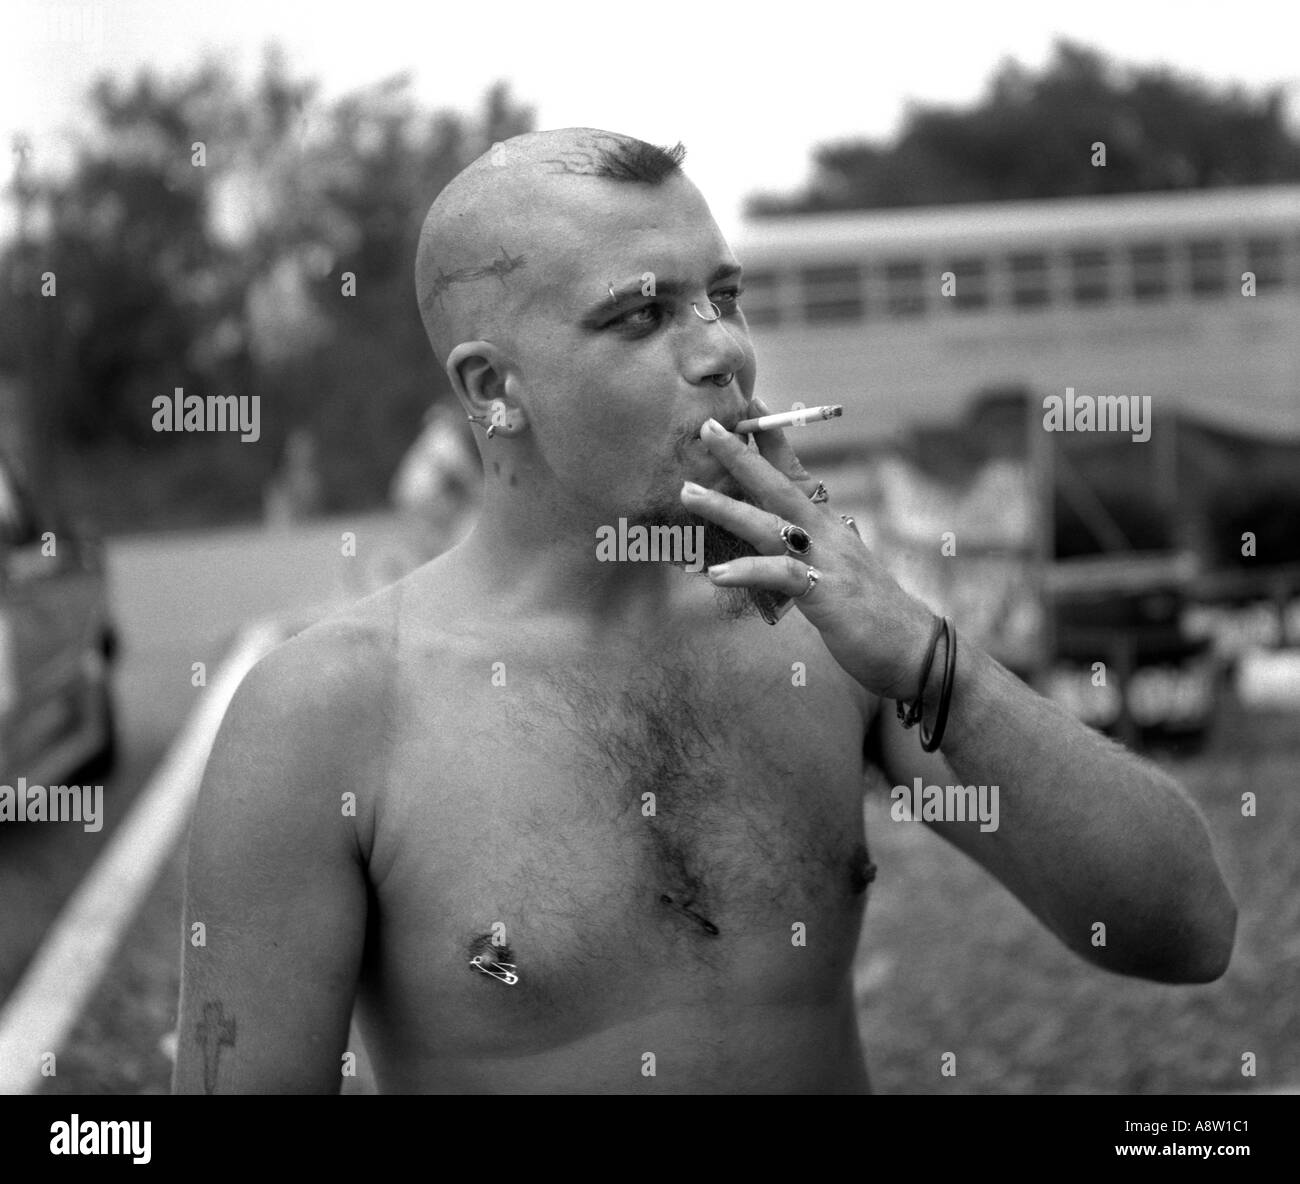 Man with body piercings smoking cigarette generation X at Woodstock 1994 music festival - Stock Image